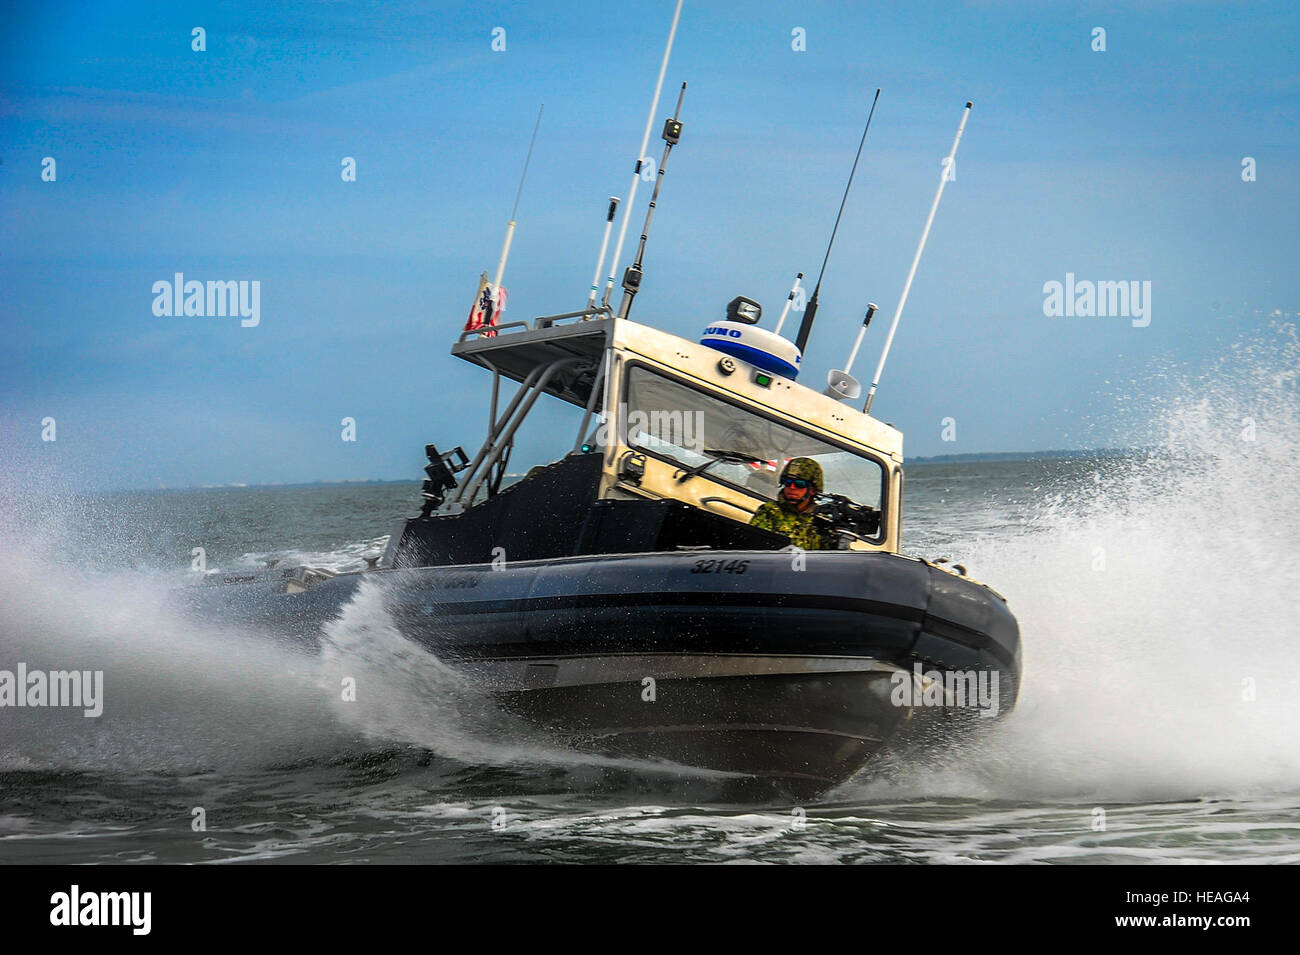 Members of the Port Security Unit 309 perform high-speed tactical boat maneuvers during a joint training exercise Stock Photo